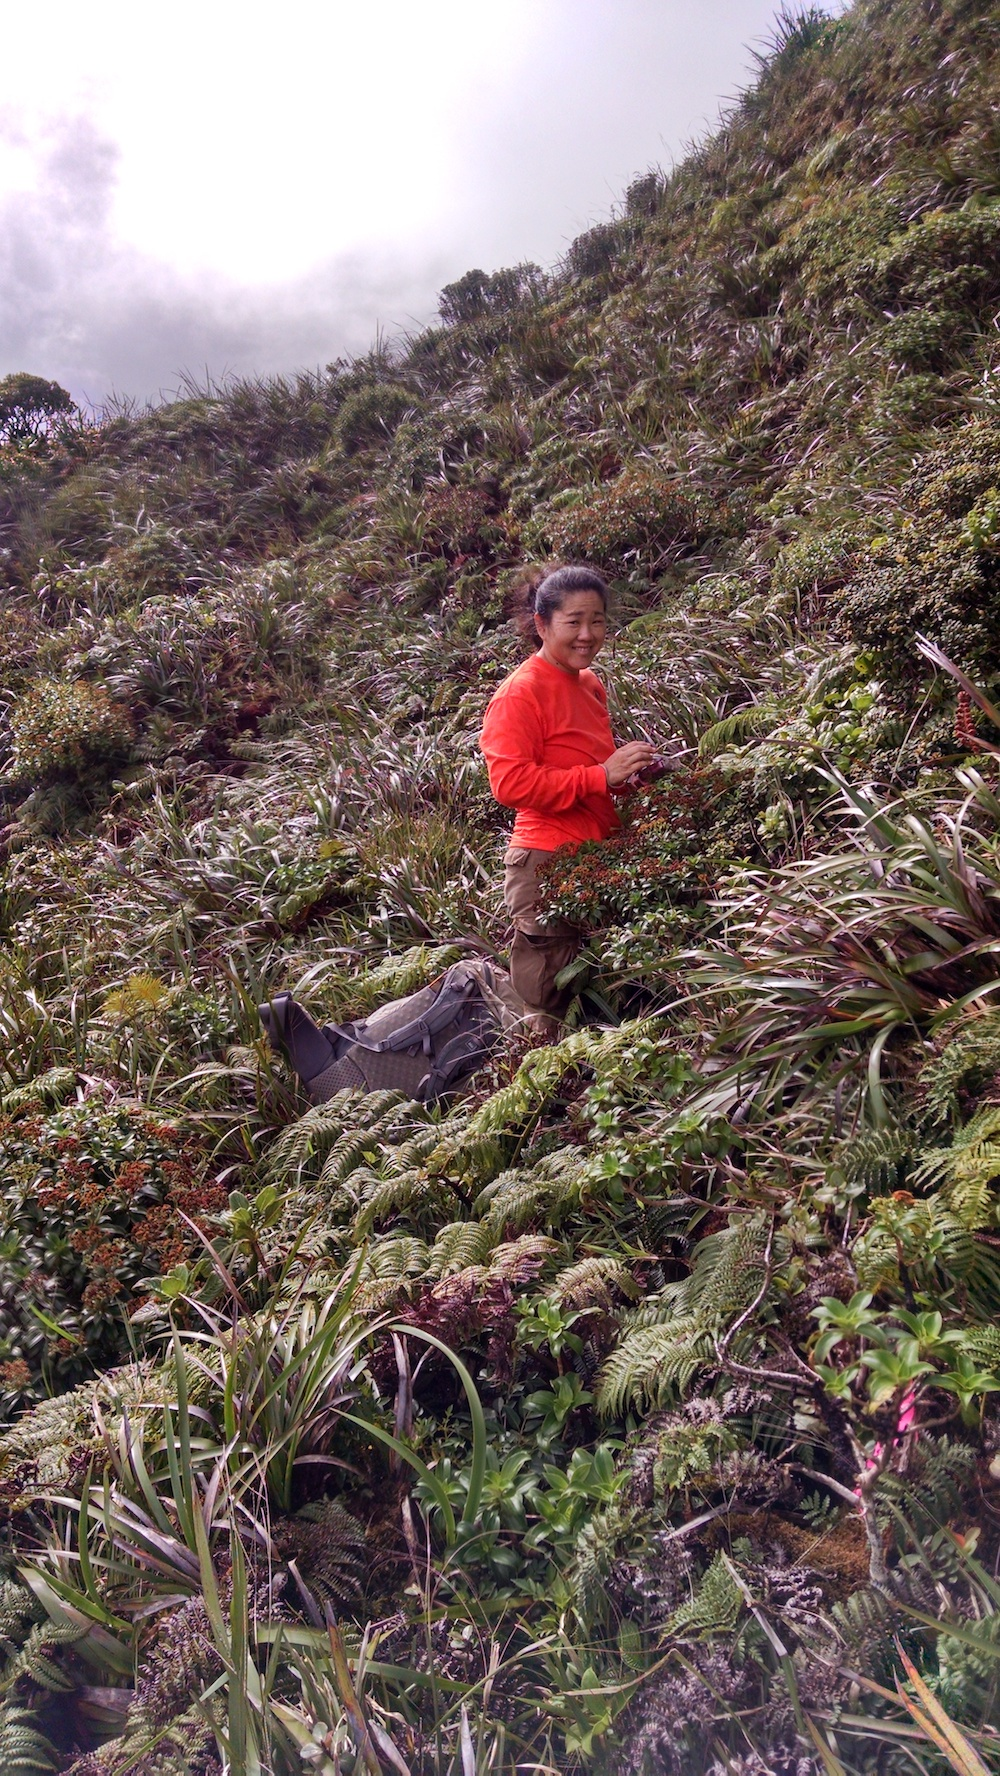 Amy Tsuneyoshi in the field. Source: Amy Tsuneyoshi.